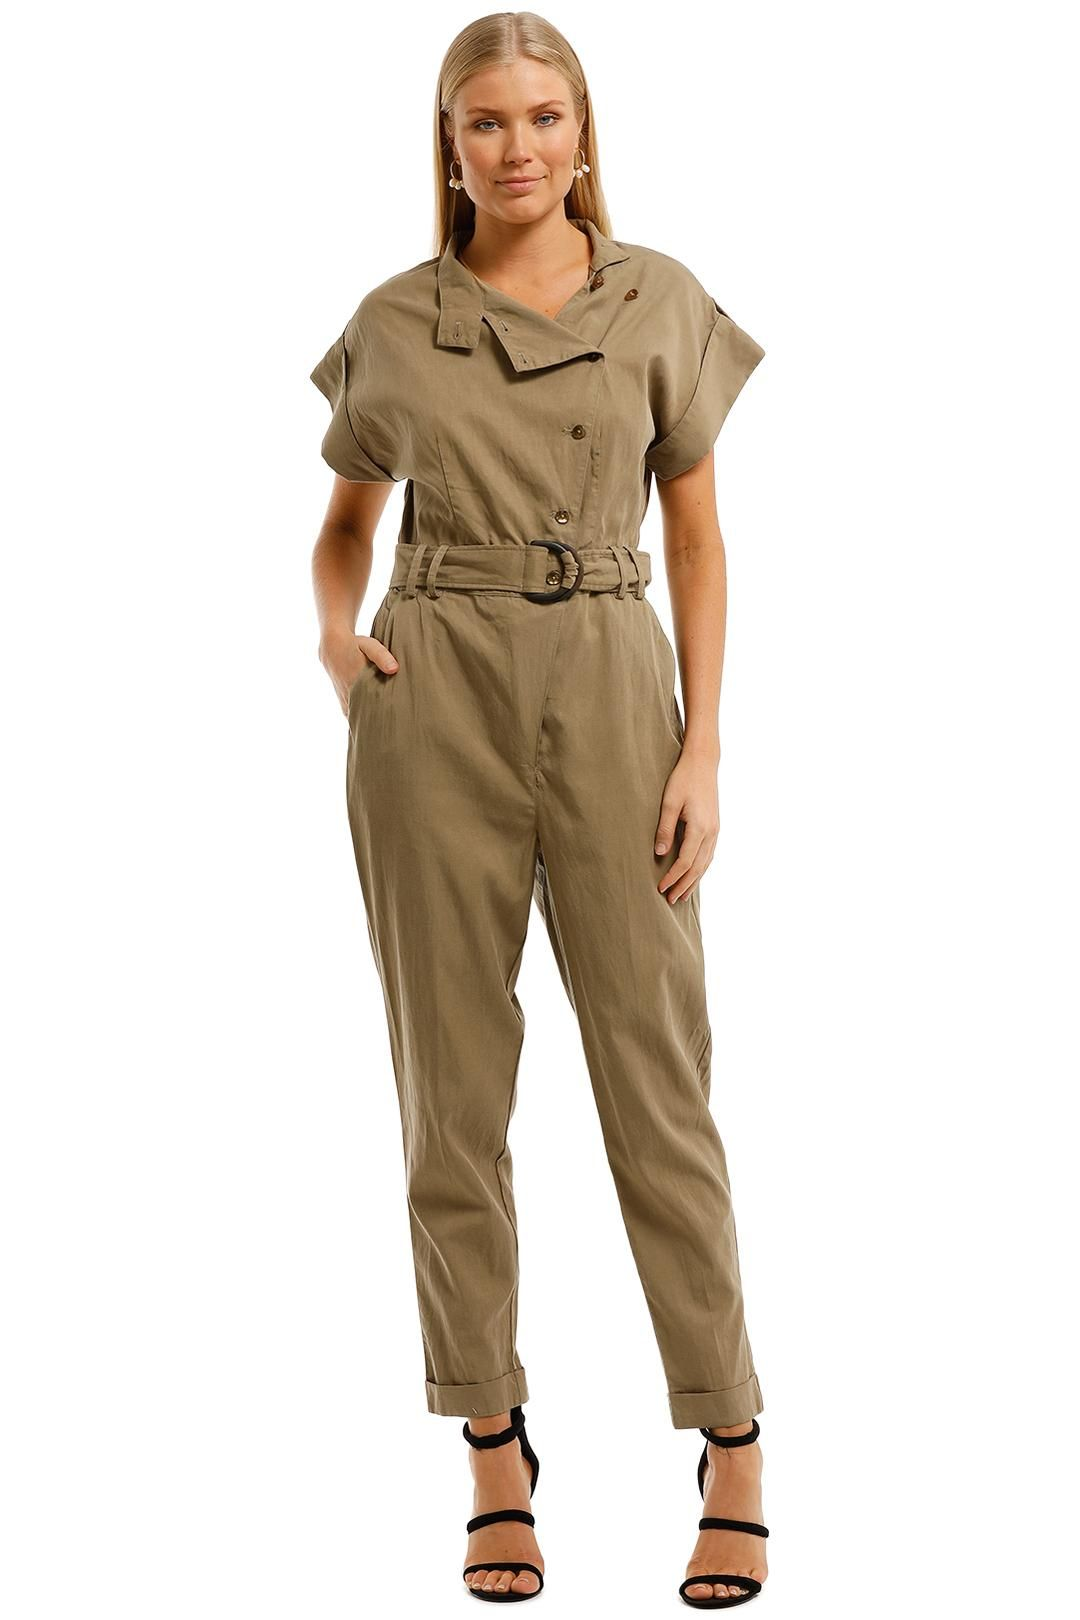 Witchery Utility Jumpsuit Pale Khaki Green Short Sleeve